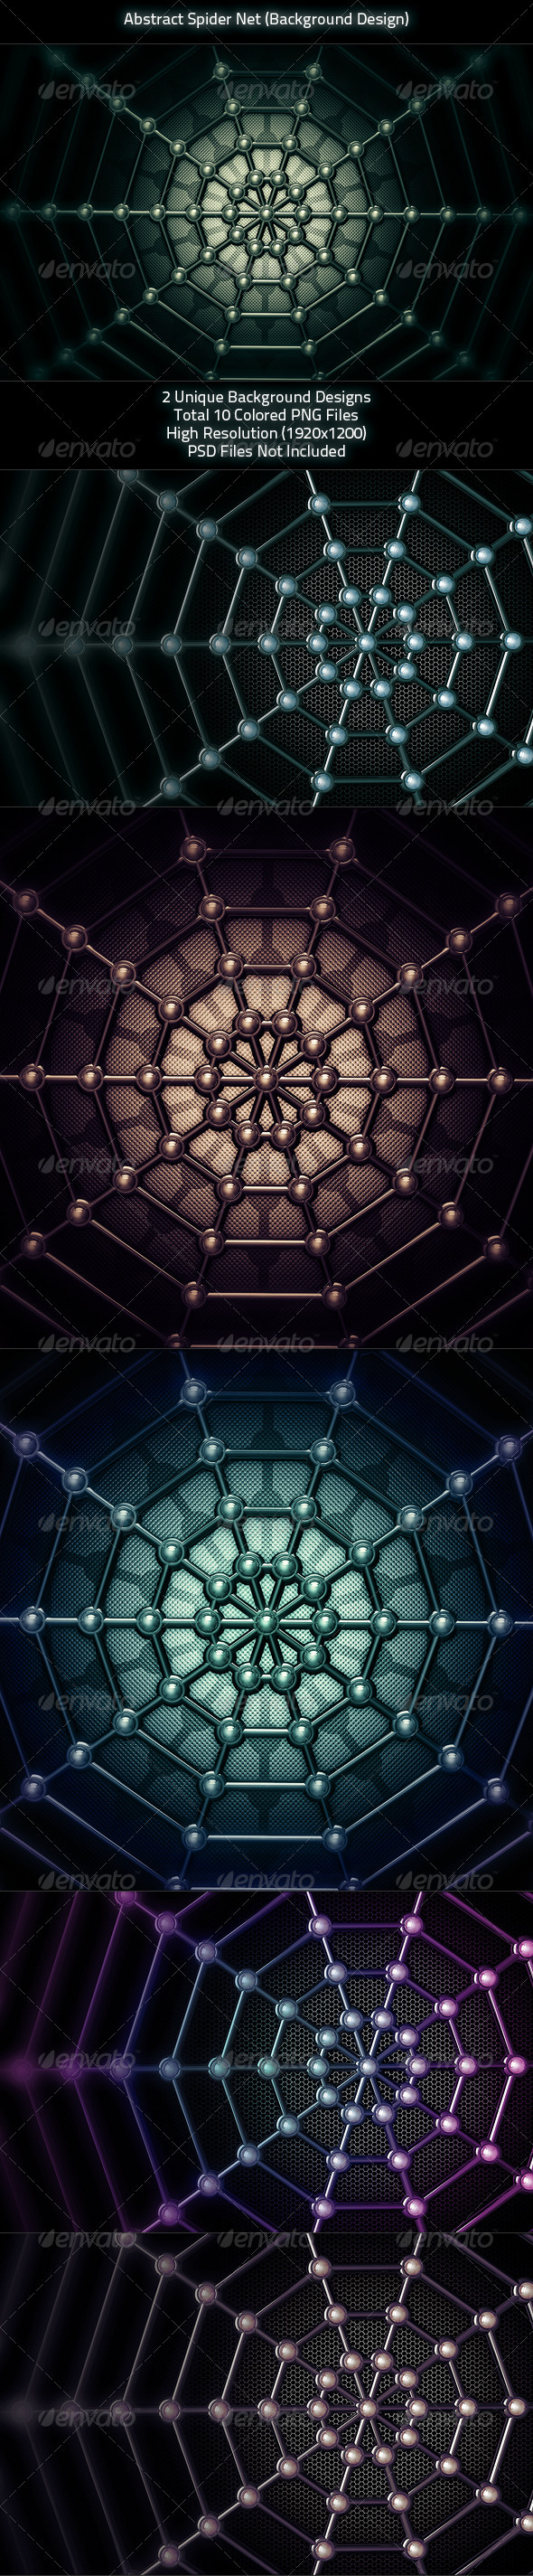 Abstract Spider Net  - 3D Backgrounds